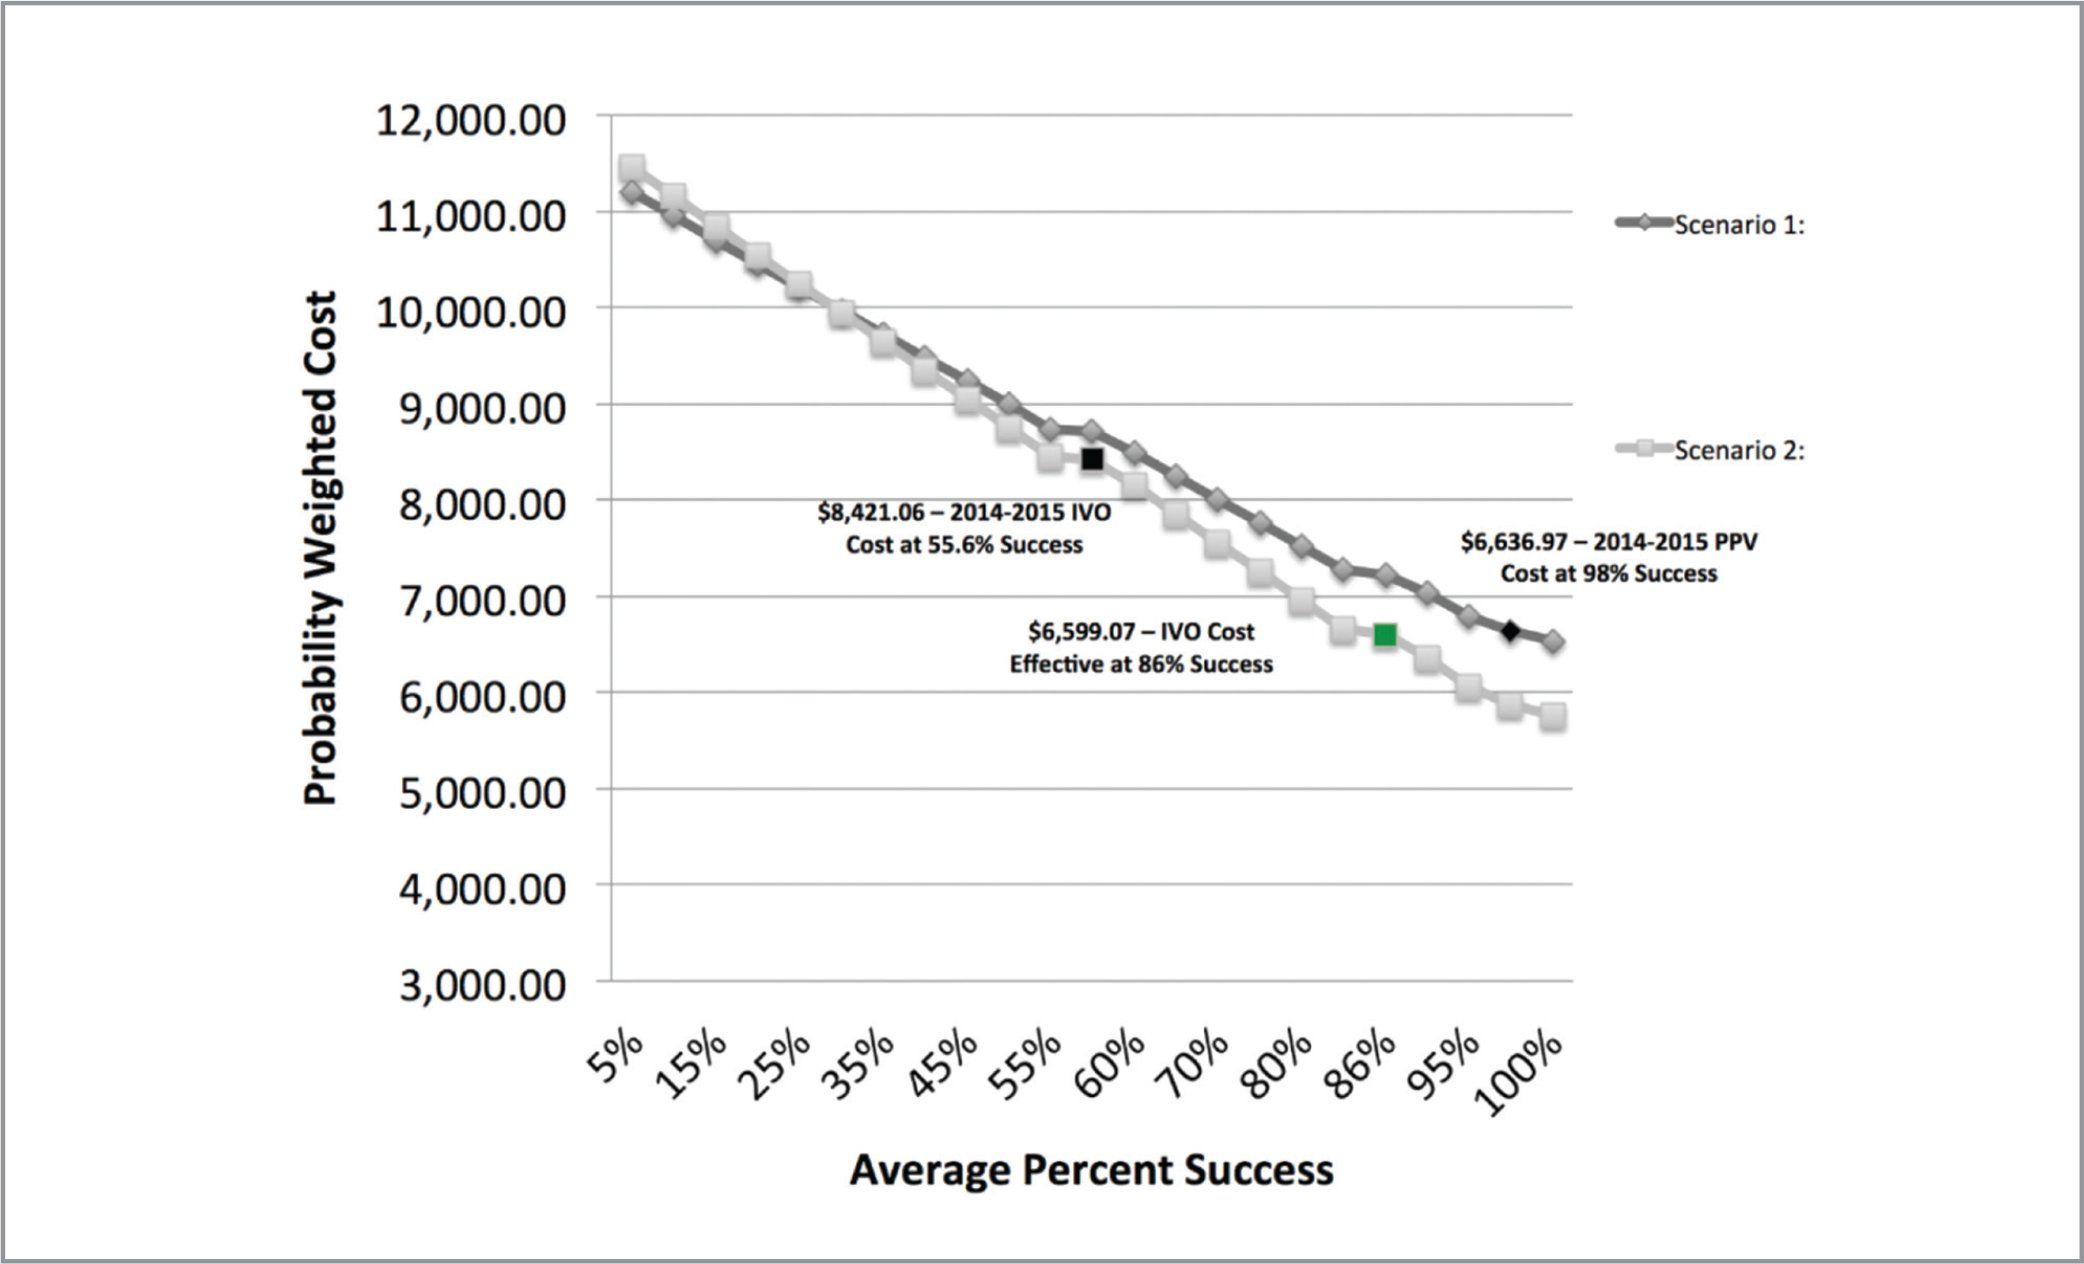 Probability weighted cost versus average percent success in 2014 to 2015: The 2014 to 2015 intravitreal ocriplasmin cost at a 55.6% success rate was $8,421.06, whereas the 2014 to 2015 pars plana vitrectomy cost at a 98% success rate was $6,636.97. To achieve cost effectiveness in the 2014 to 2015 probability weighted model at $6,599.07, the success rate would need to increase to 86%.